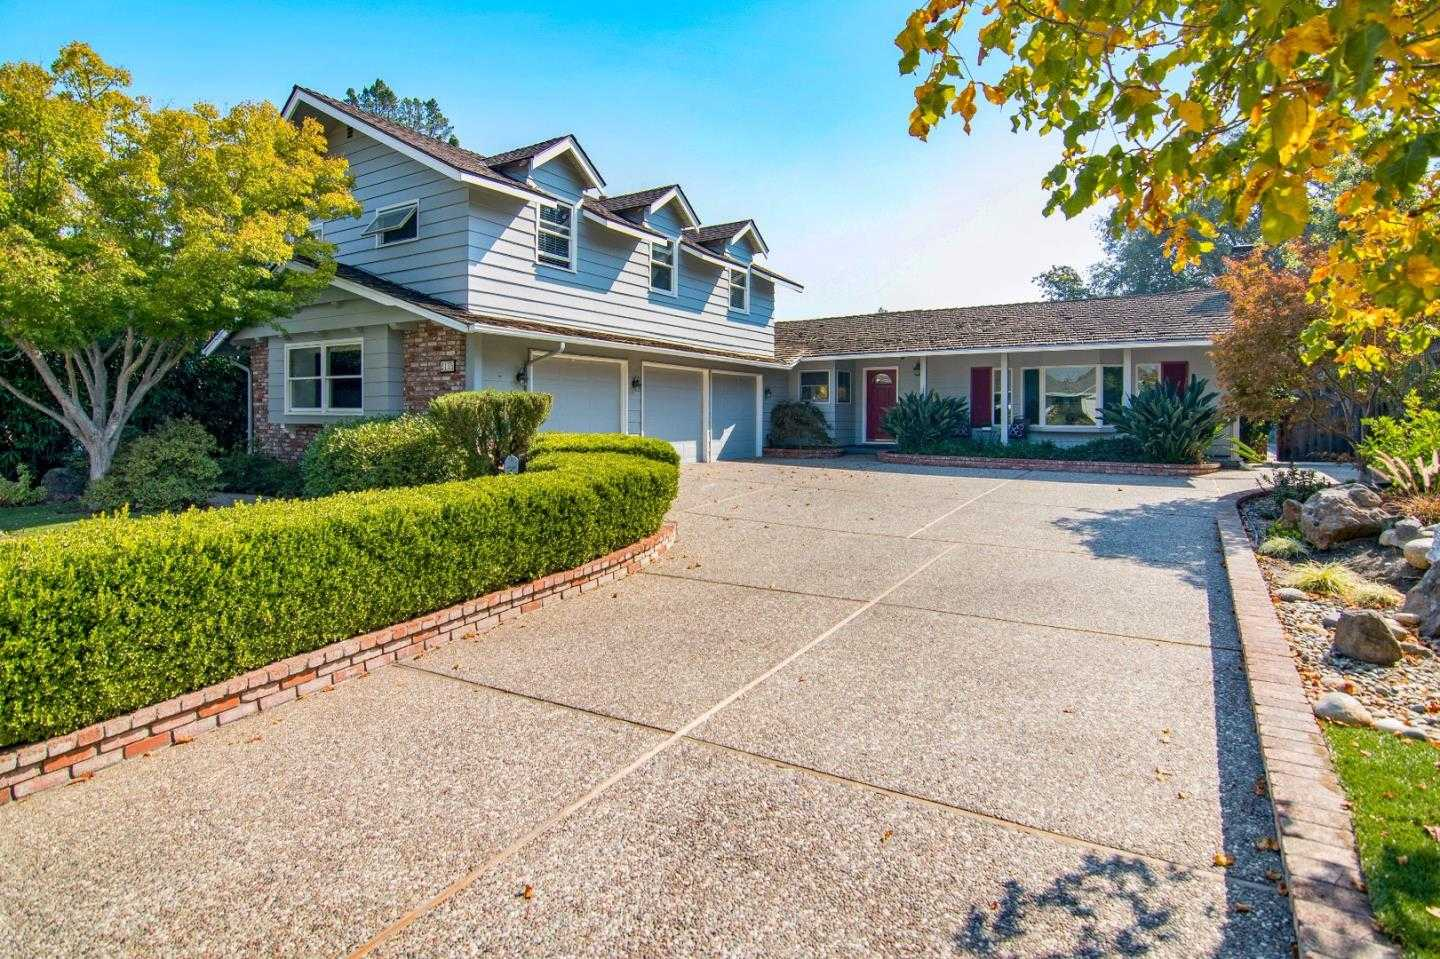 $3,398,000 - 5Br/3Ba -  for Sale in Menlo Park